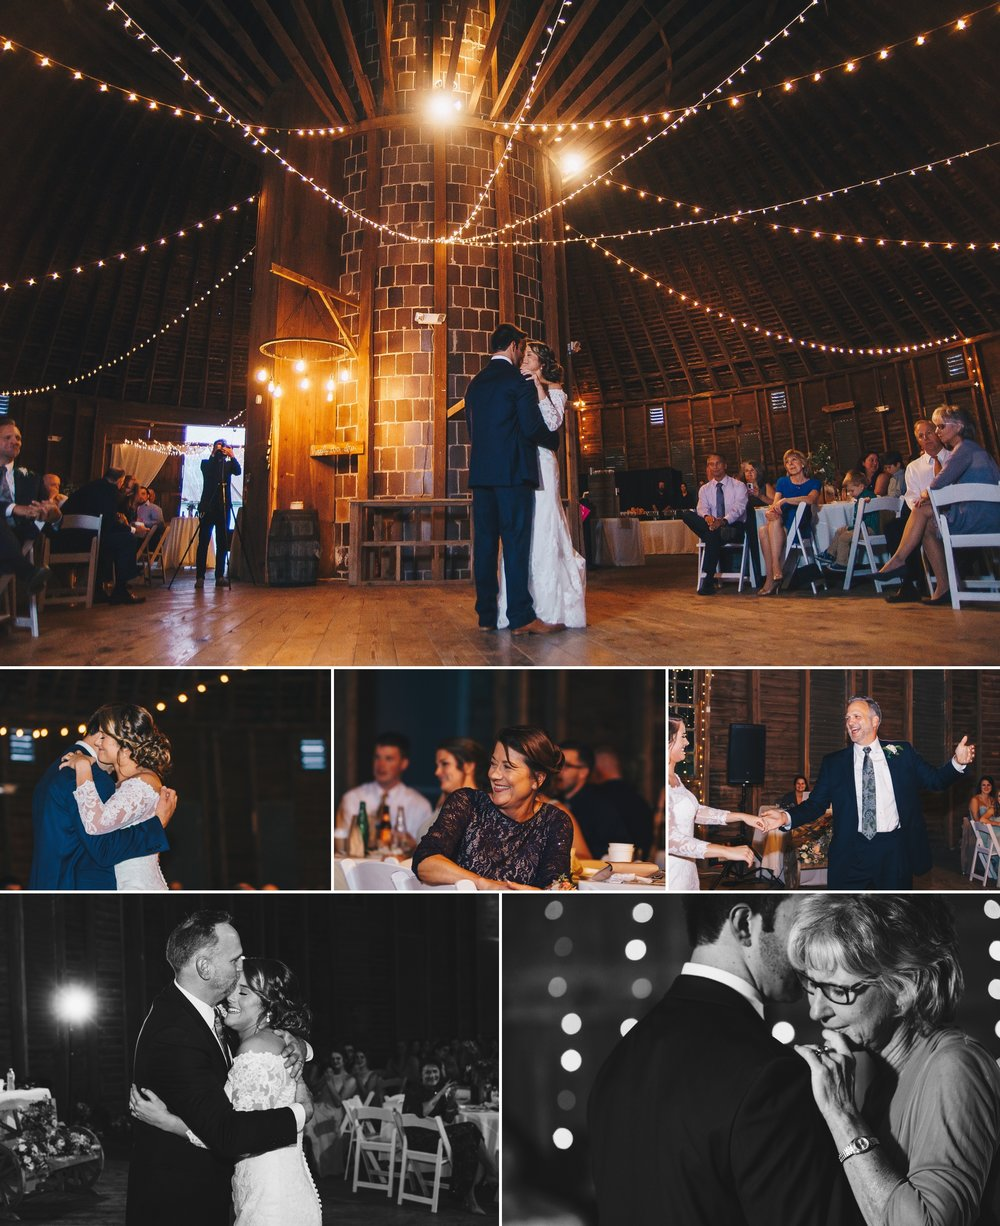 shabby chic rustic apple orchard wedding at historic round barn gettysburg pa by jonathan hannah photography